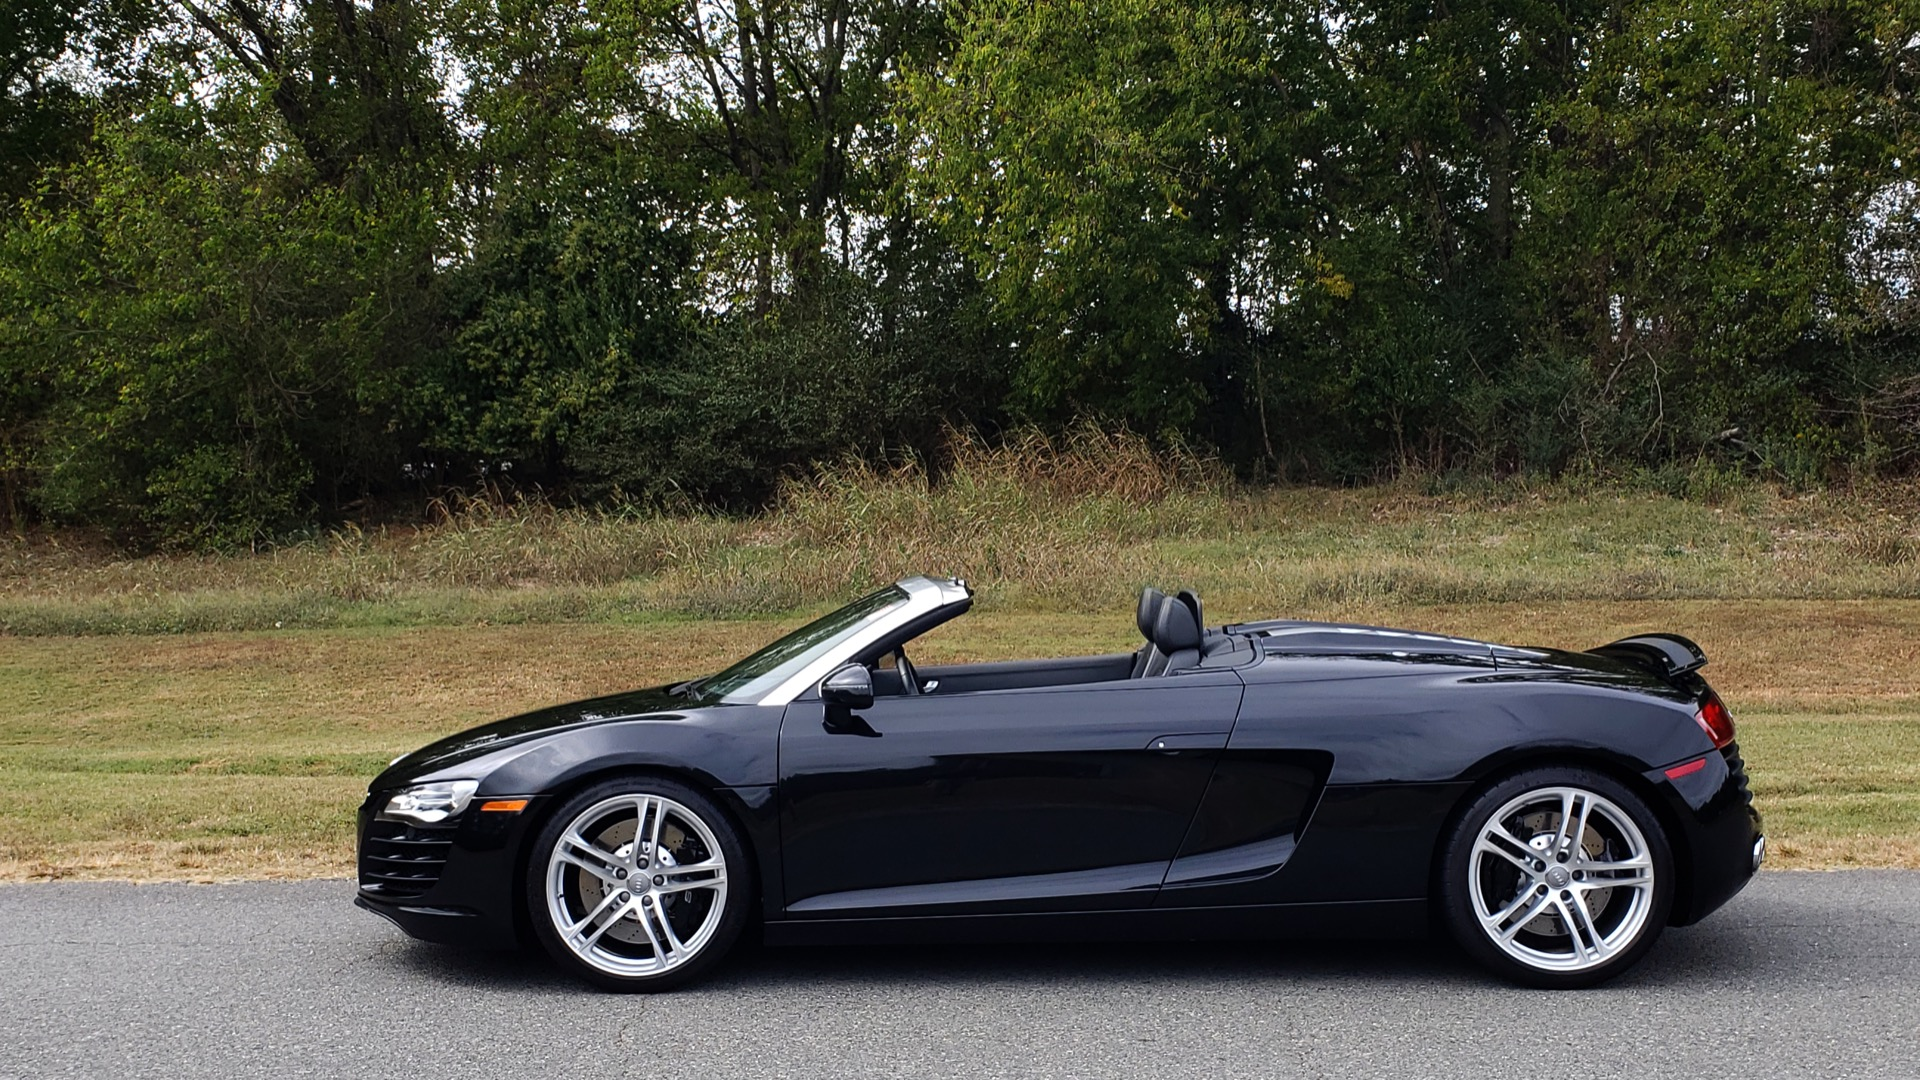 Used 2011 Audi R8 4.2L SPYDER QUATTRO / NAV / 19 IN WHEELS / LOW MILES for sale Sold at Formula Imports in Charlotte NC 28227 4